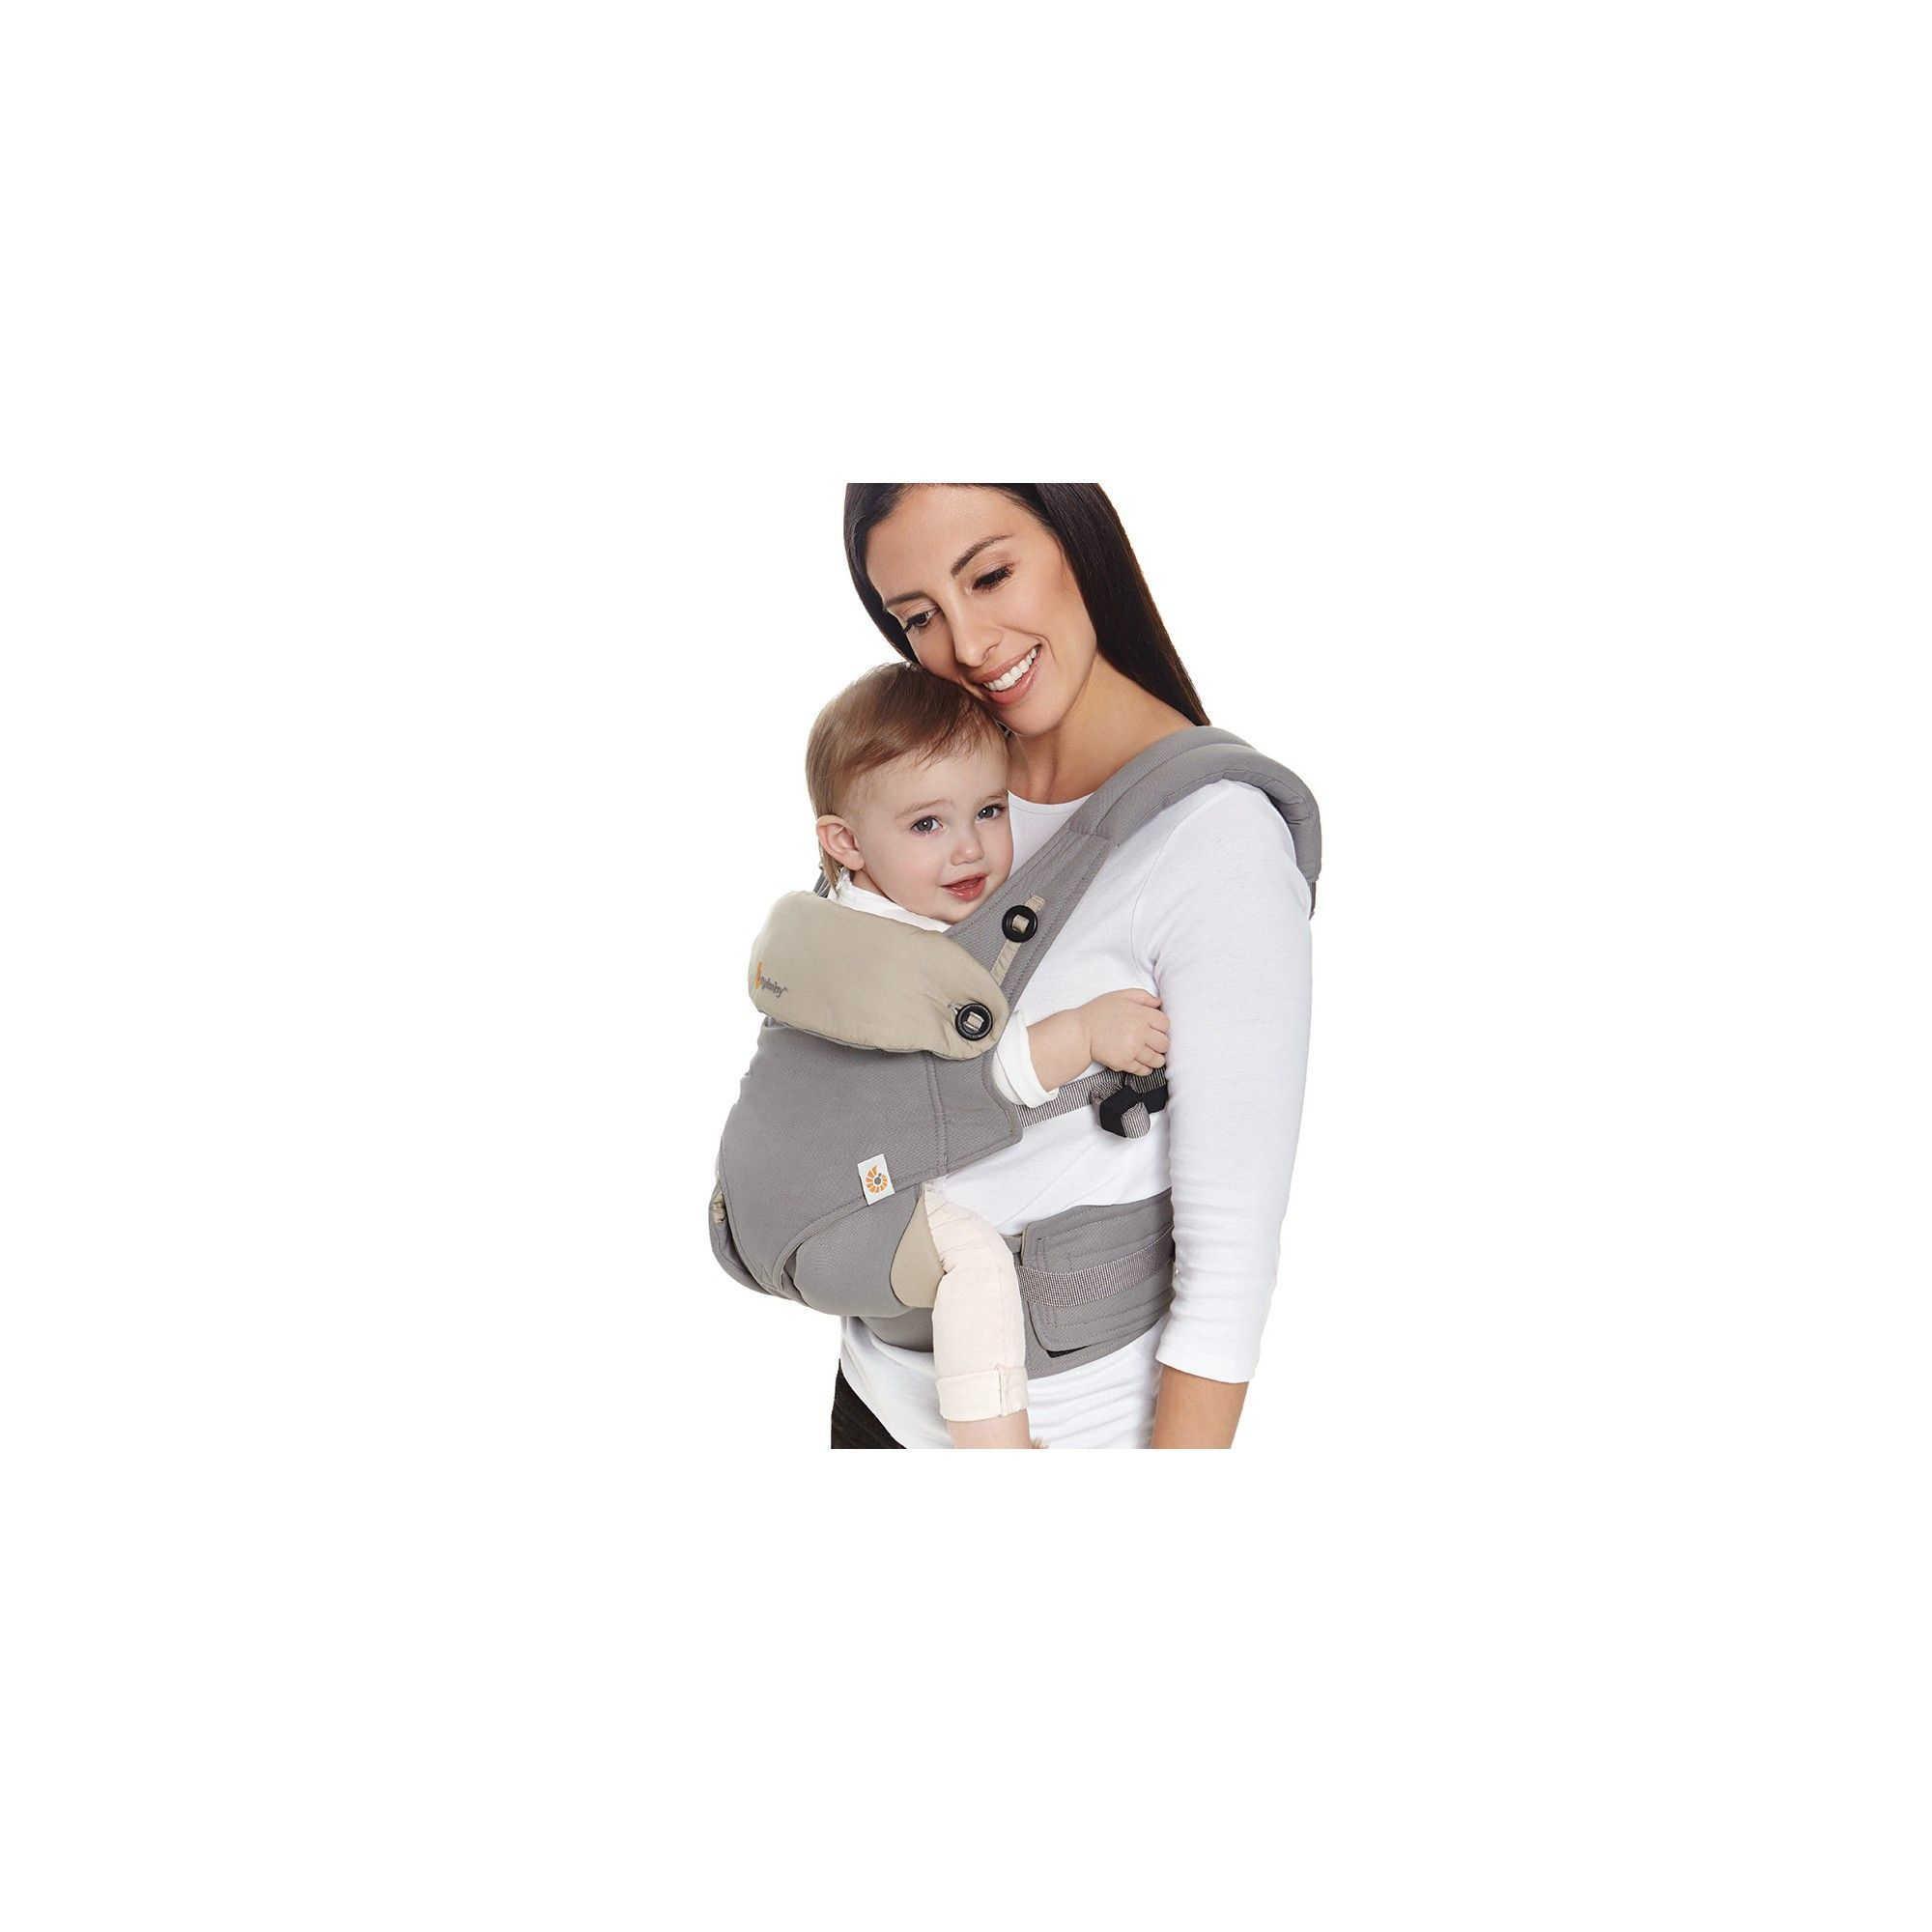 055b226673a Ergobaby 360 All Carry Positions Ergonomic Baby Carrier with Bundle of Joy  Infant Insert - Gray